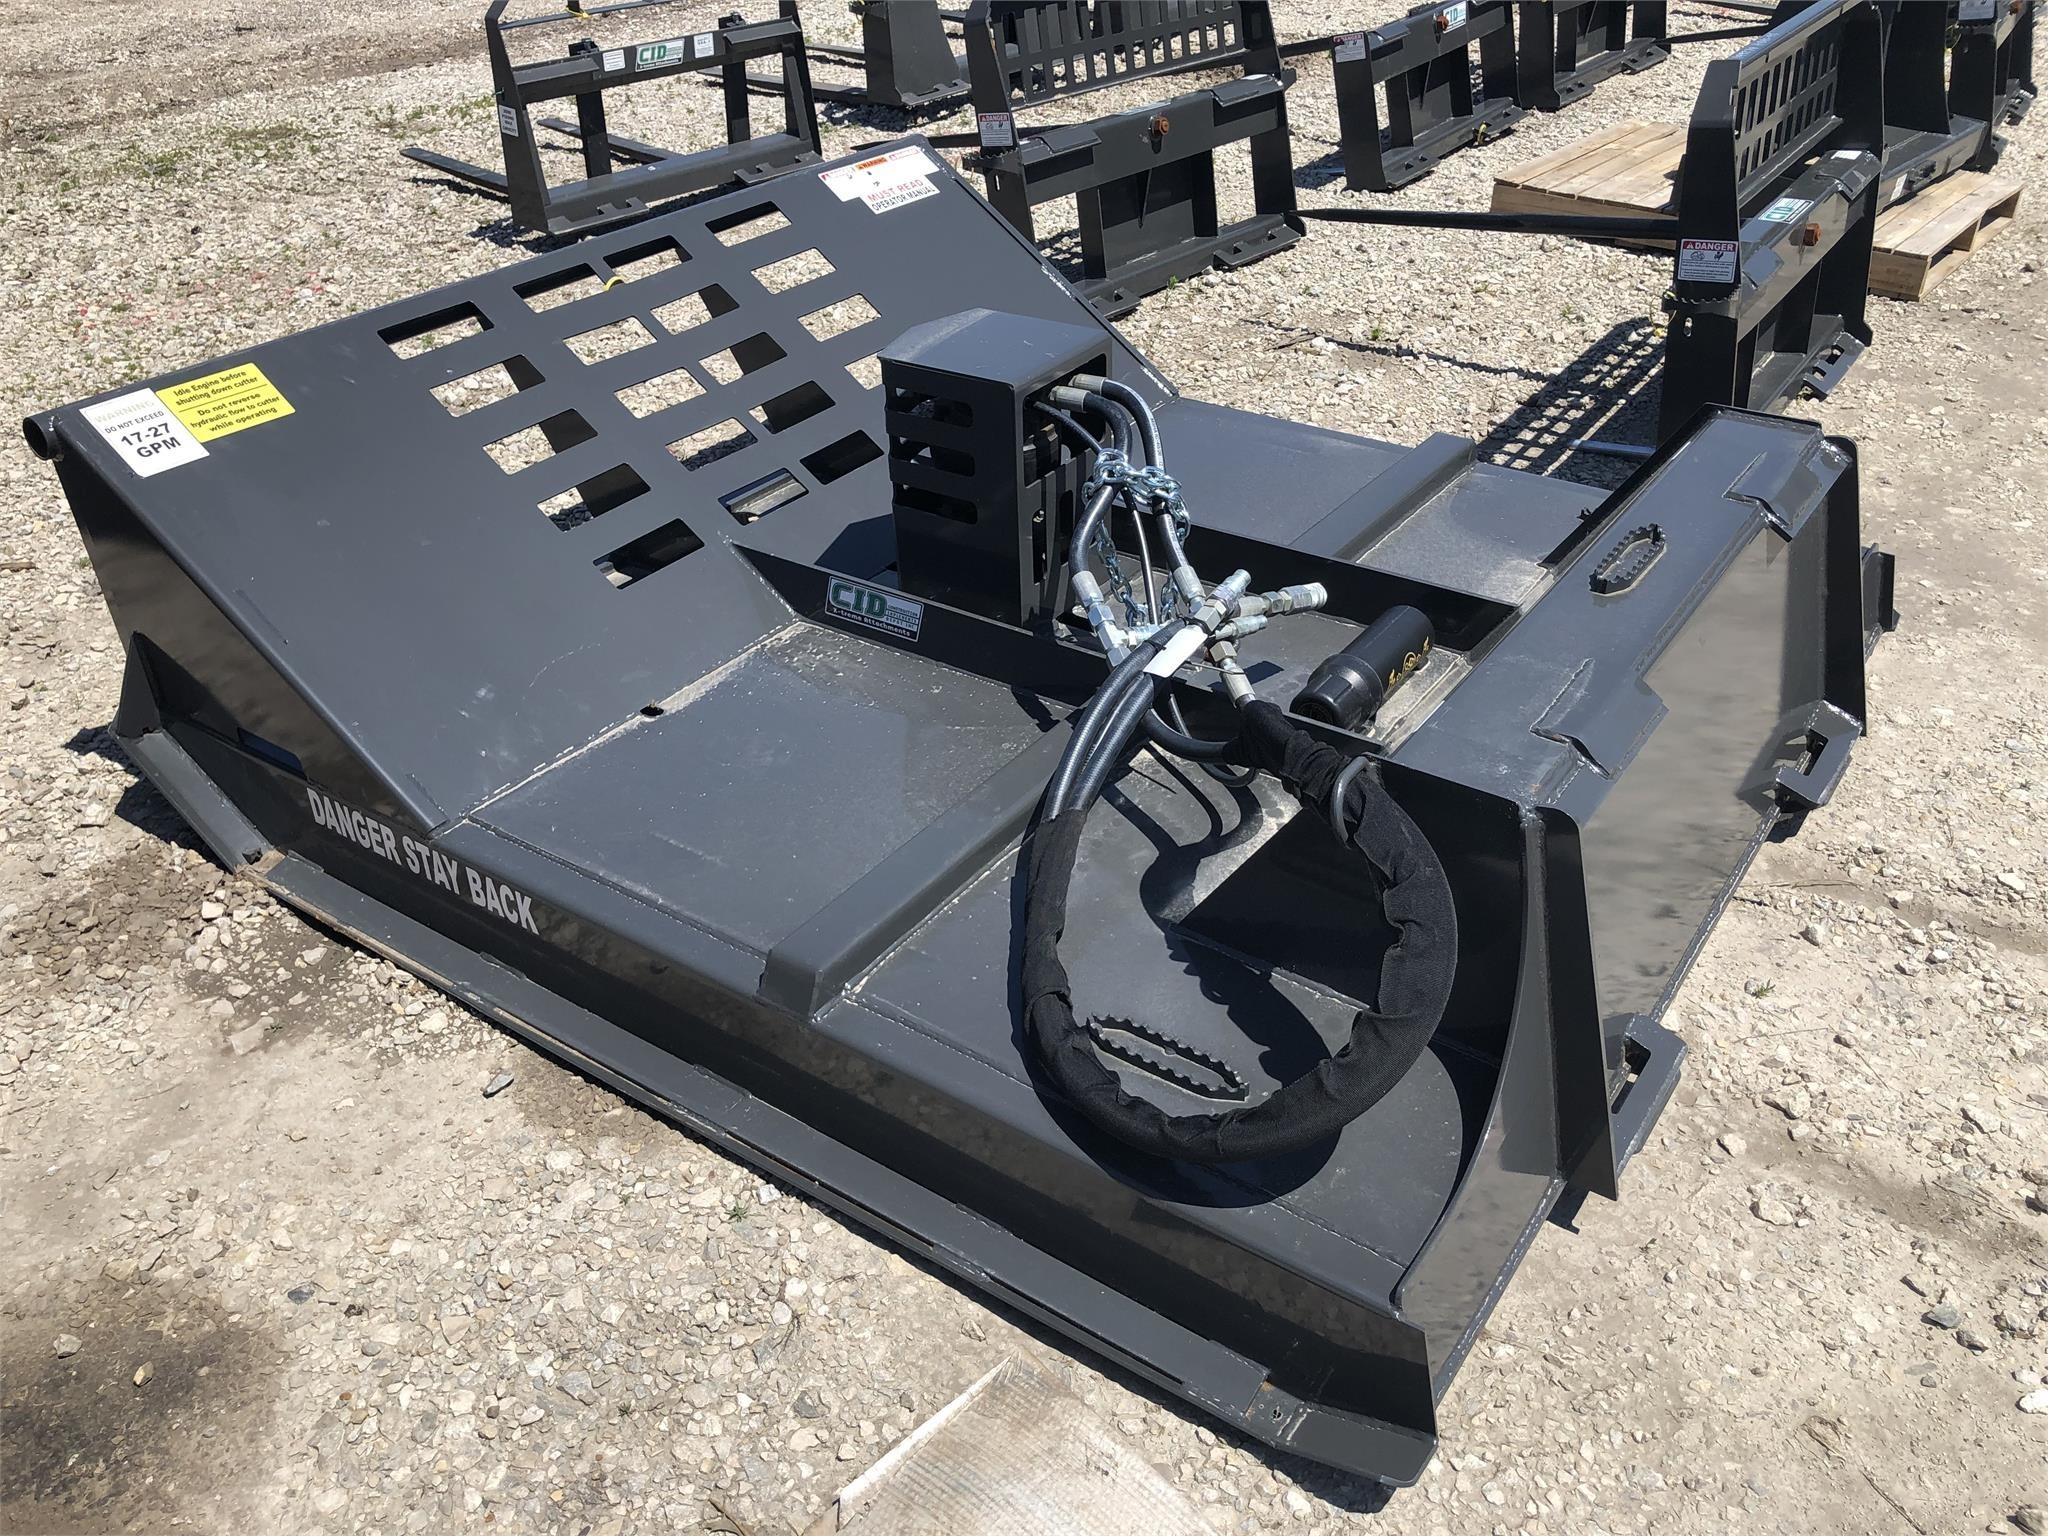 2019 CID XBC172772 Loader and Skid Steer Attachment